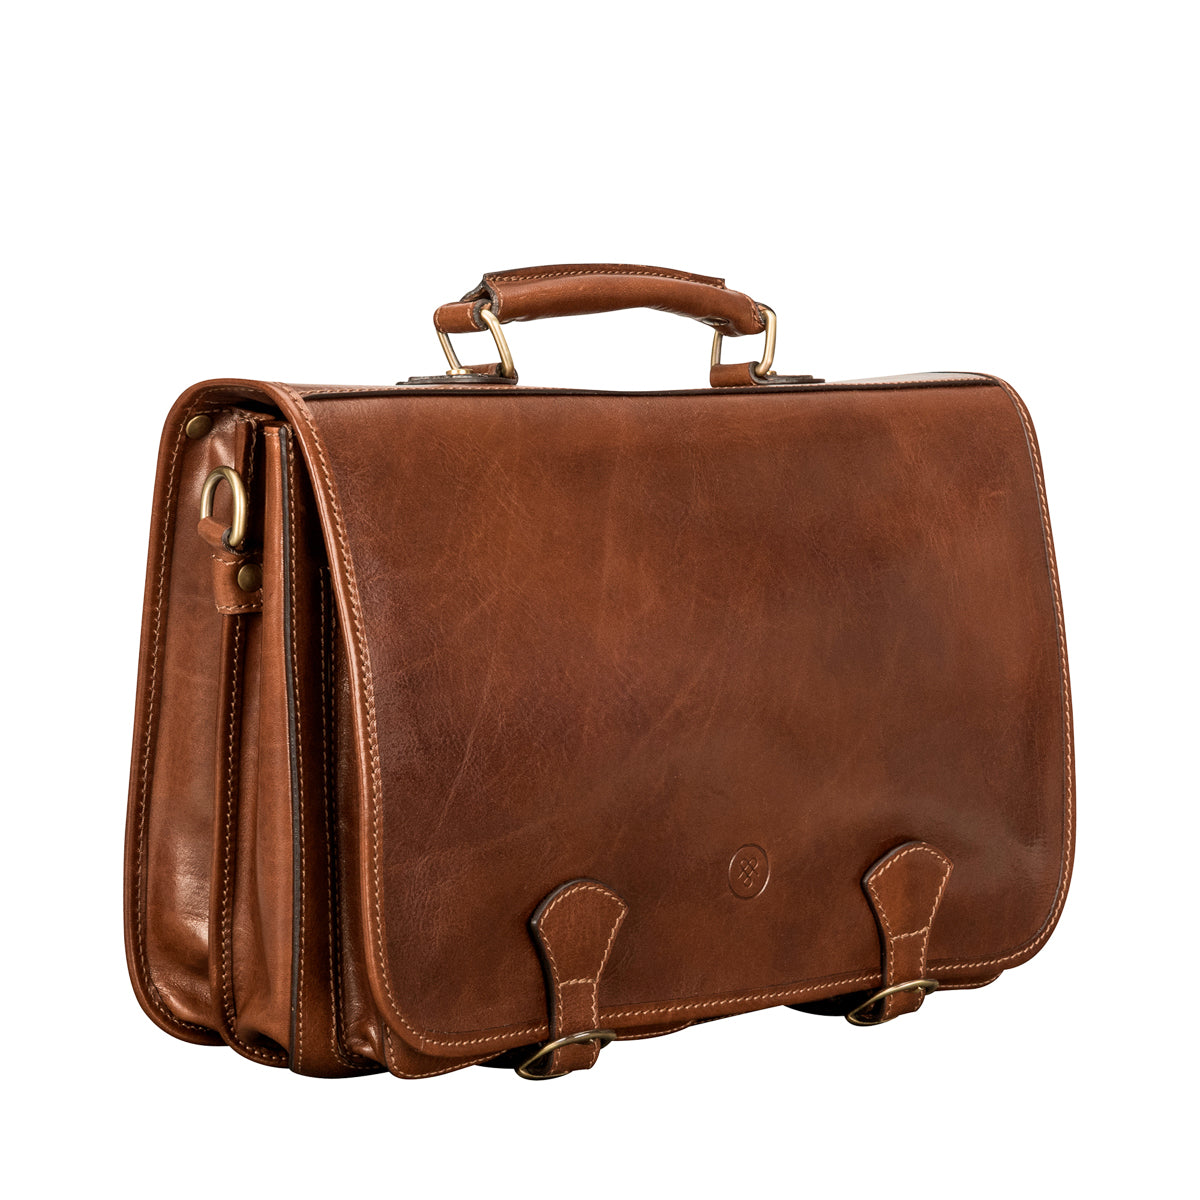 Image 2 of the 'Jesolo Due' Chestnut Veg-Tanned Leather Satchel